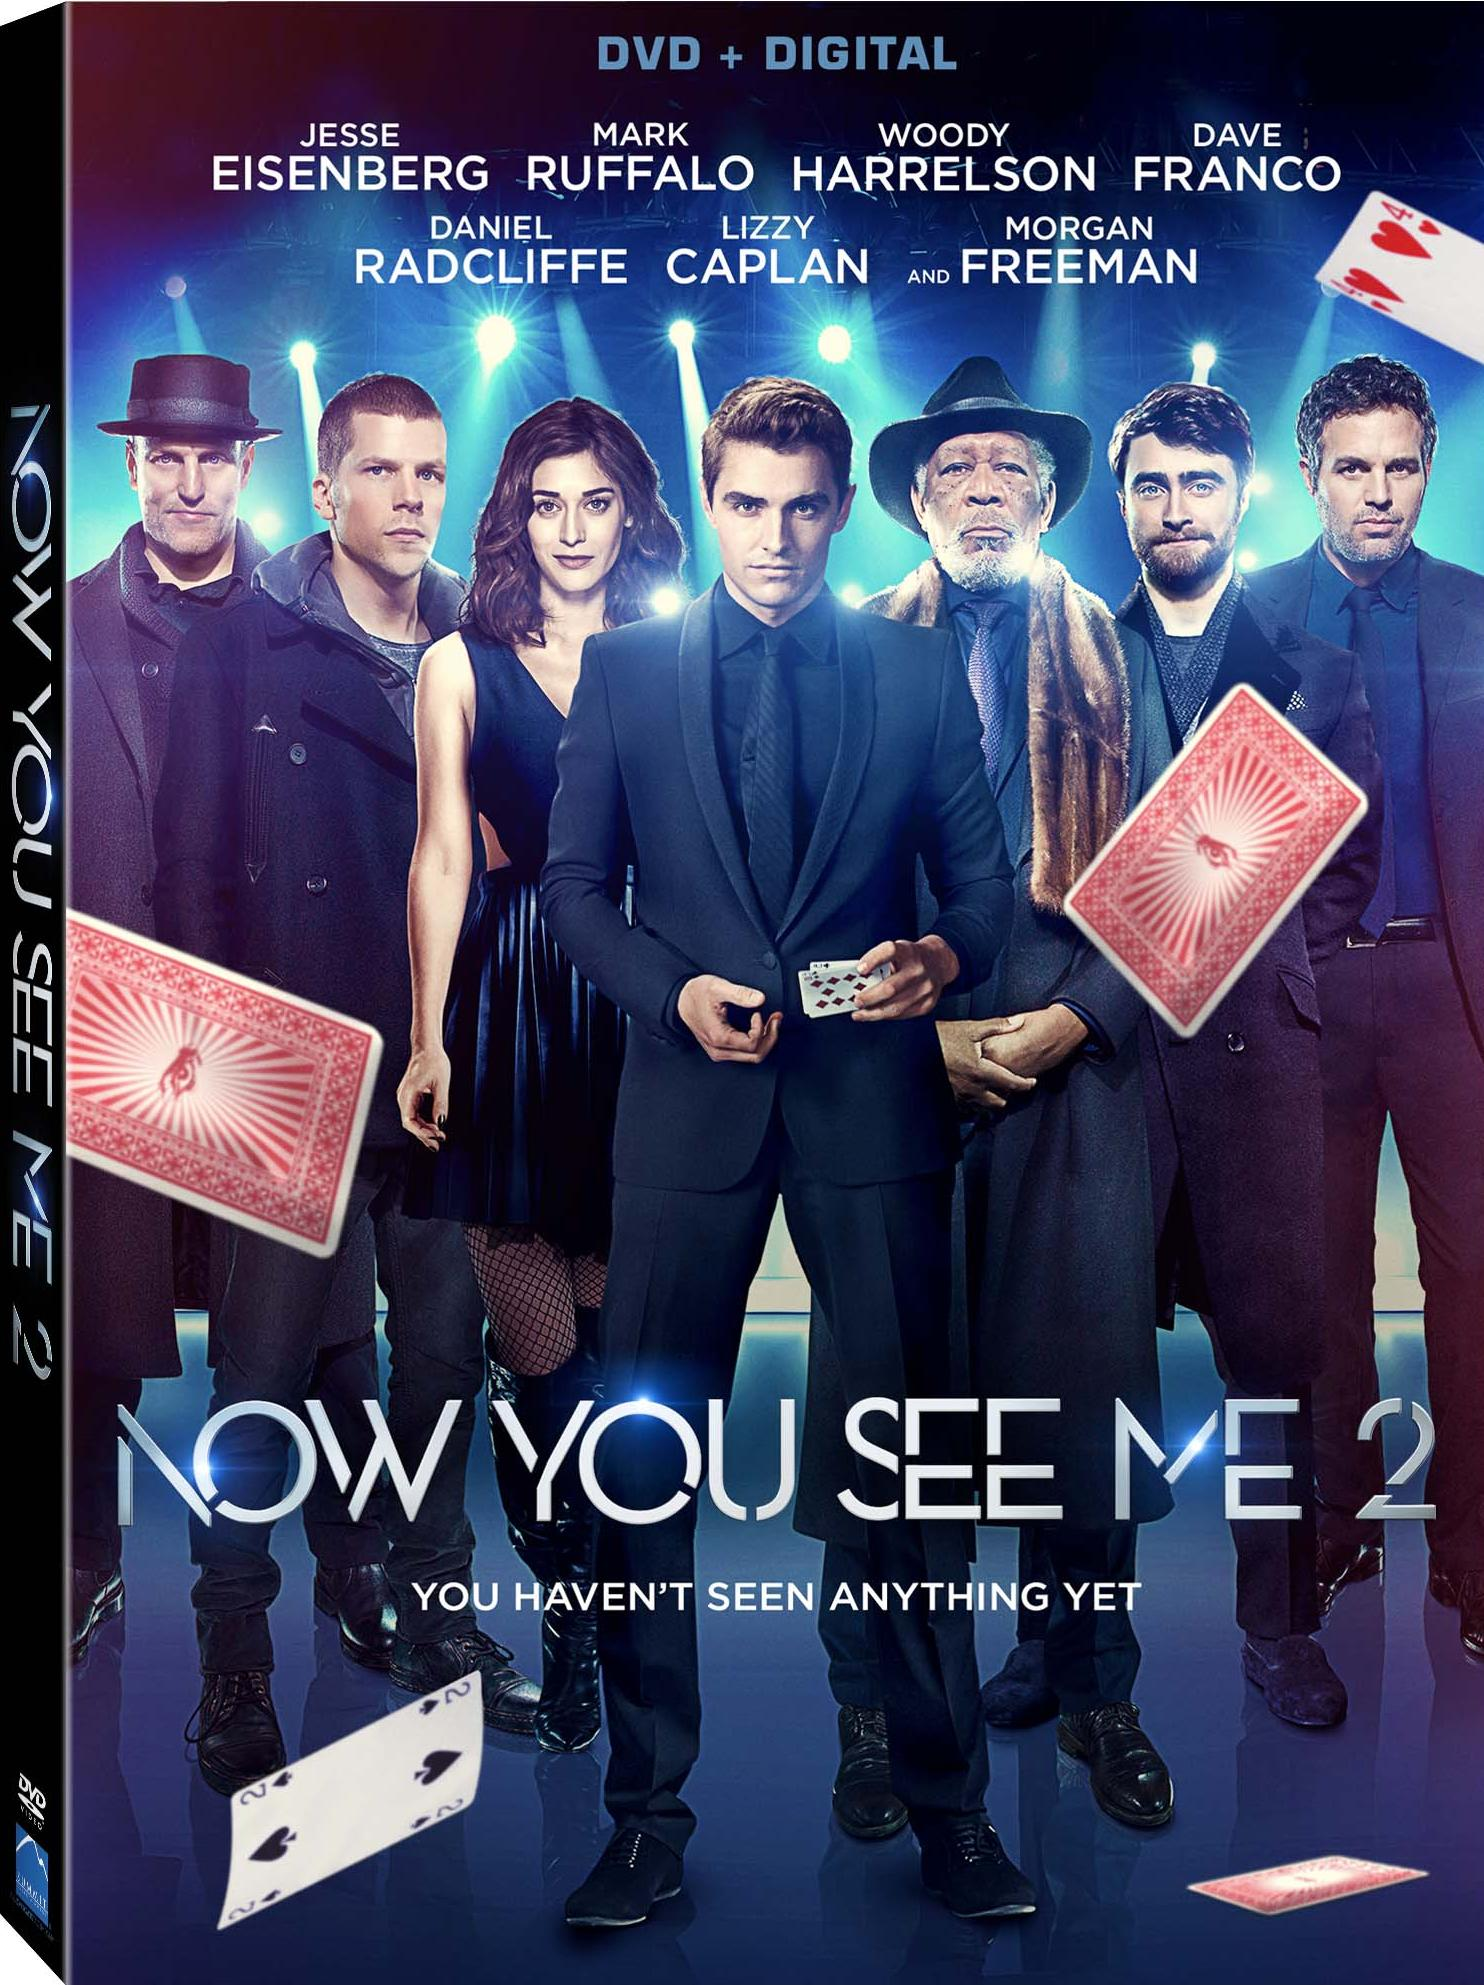 Now.You.See.Me.2-DVD.Cover | Screen-Connections | The Latest Movie ...